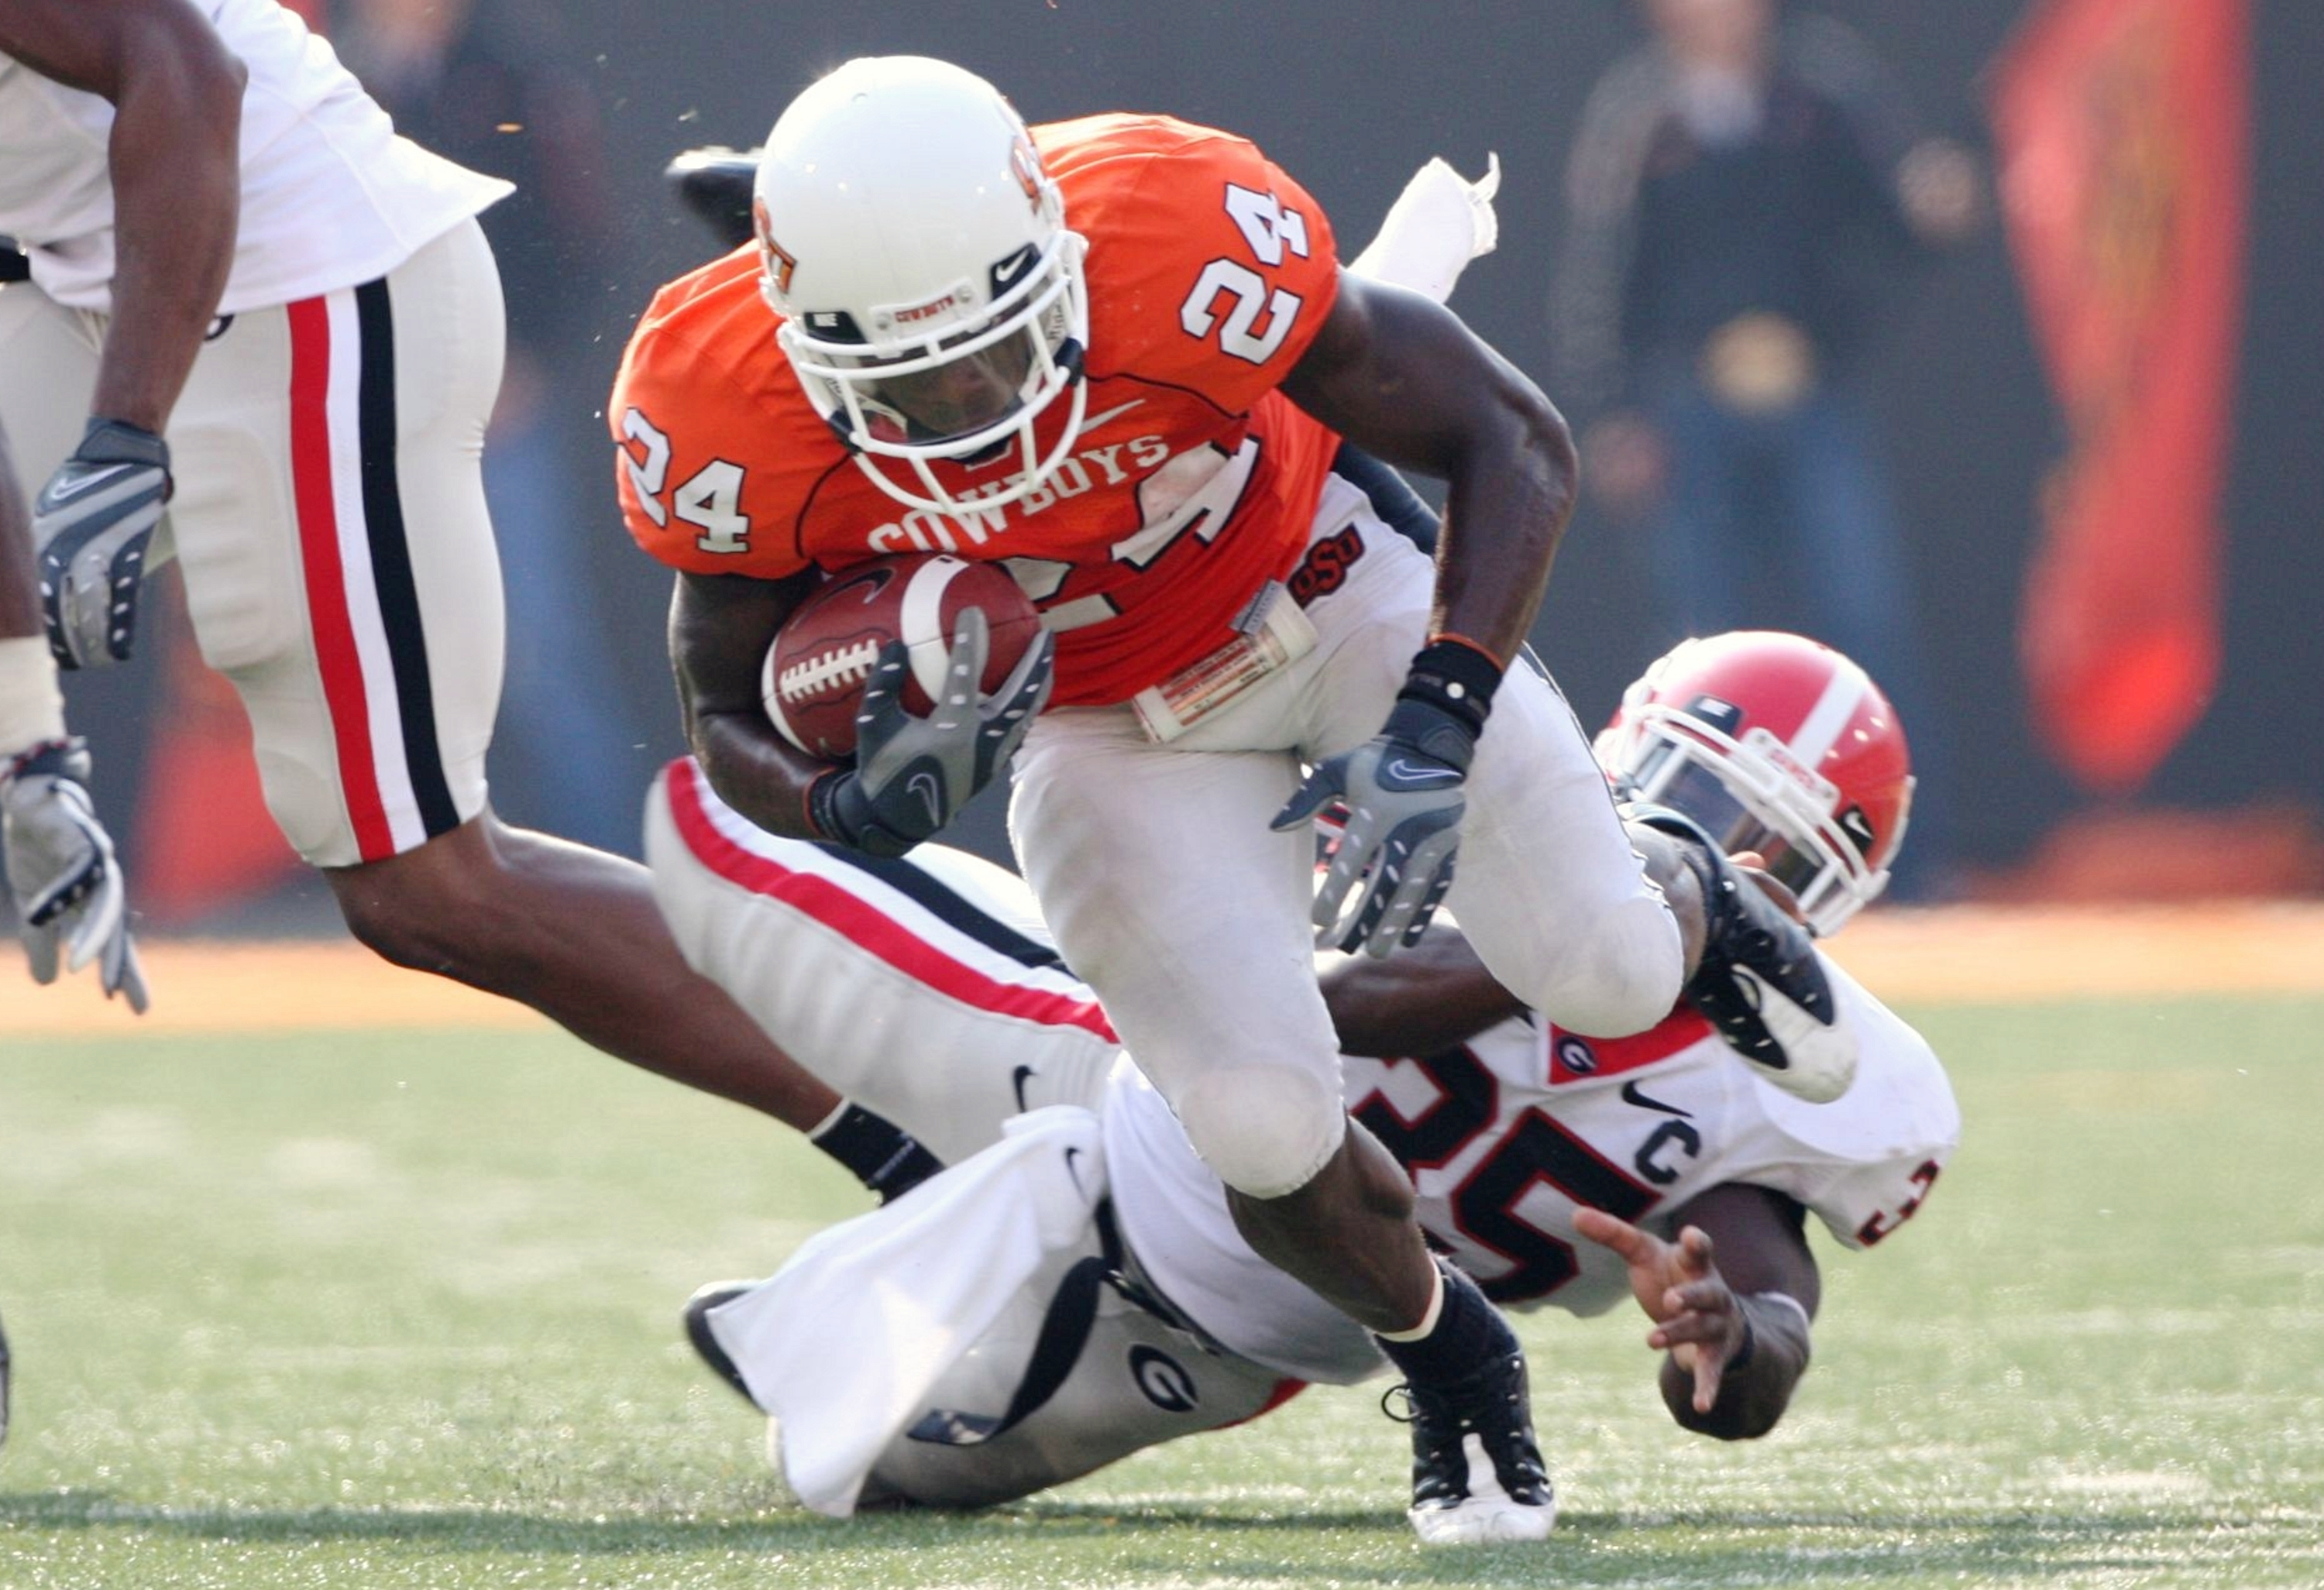 STILLWATER, OK - SEPTEMBER 5: Running back Kendall Hunter #24 of the Oklahoma State Cowboys carries the ball six yards as Rennie Curran #35 of the Georgia Bulldogs tries to stop him during the fourth quarter of the game at Boone Pickens Stadium on Septemb